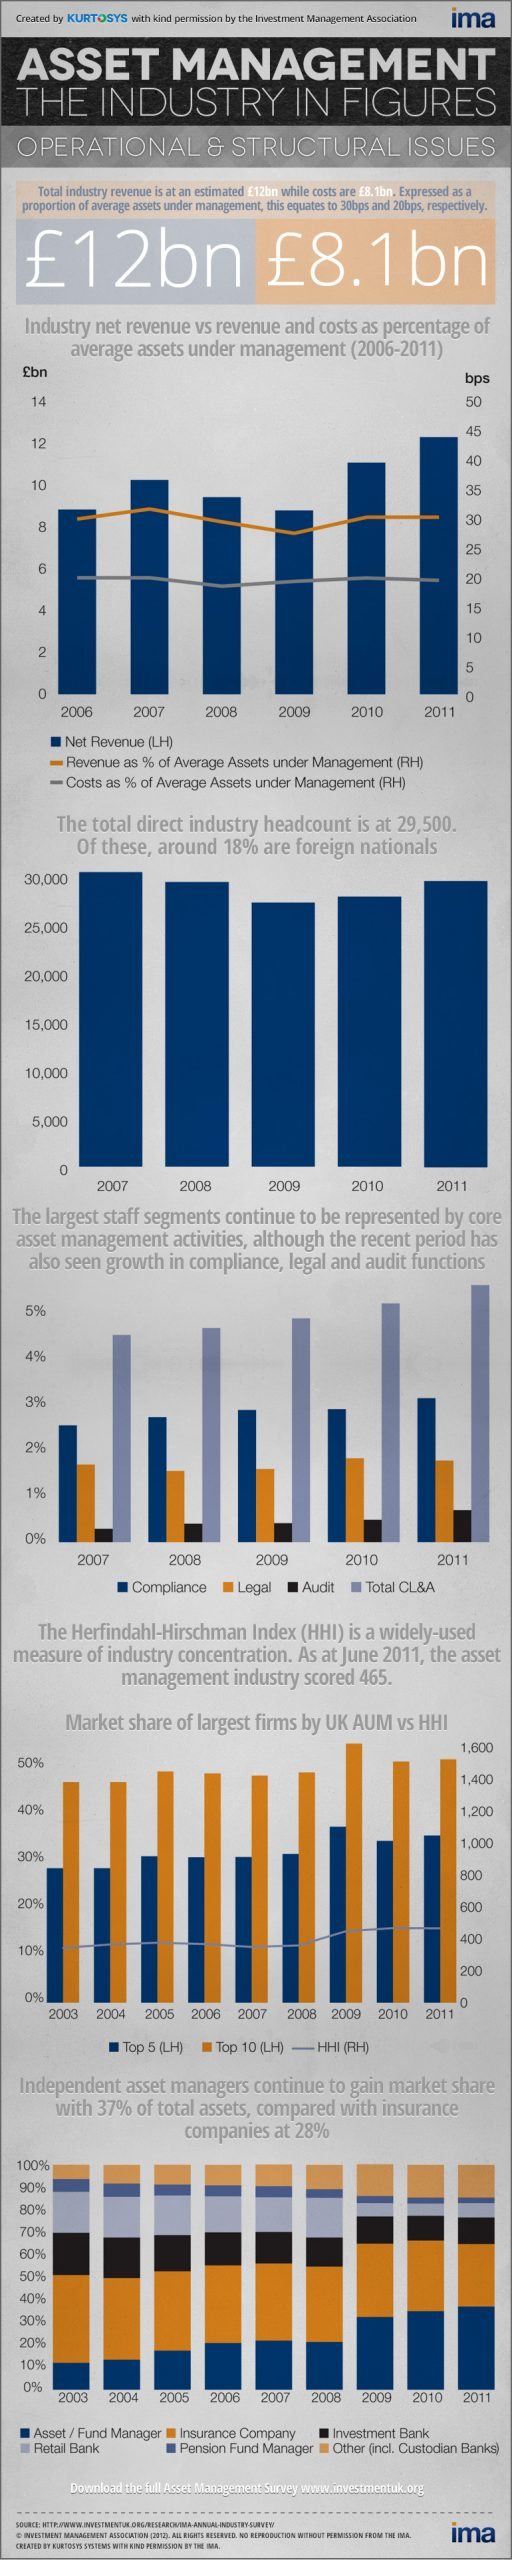 Asset Management: Operational & Structural Issues [INFOGRAPHIC] 1